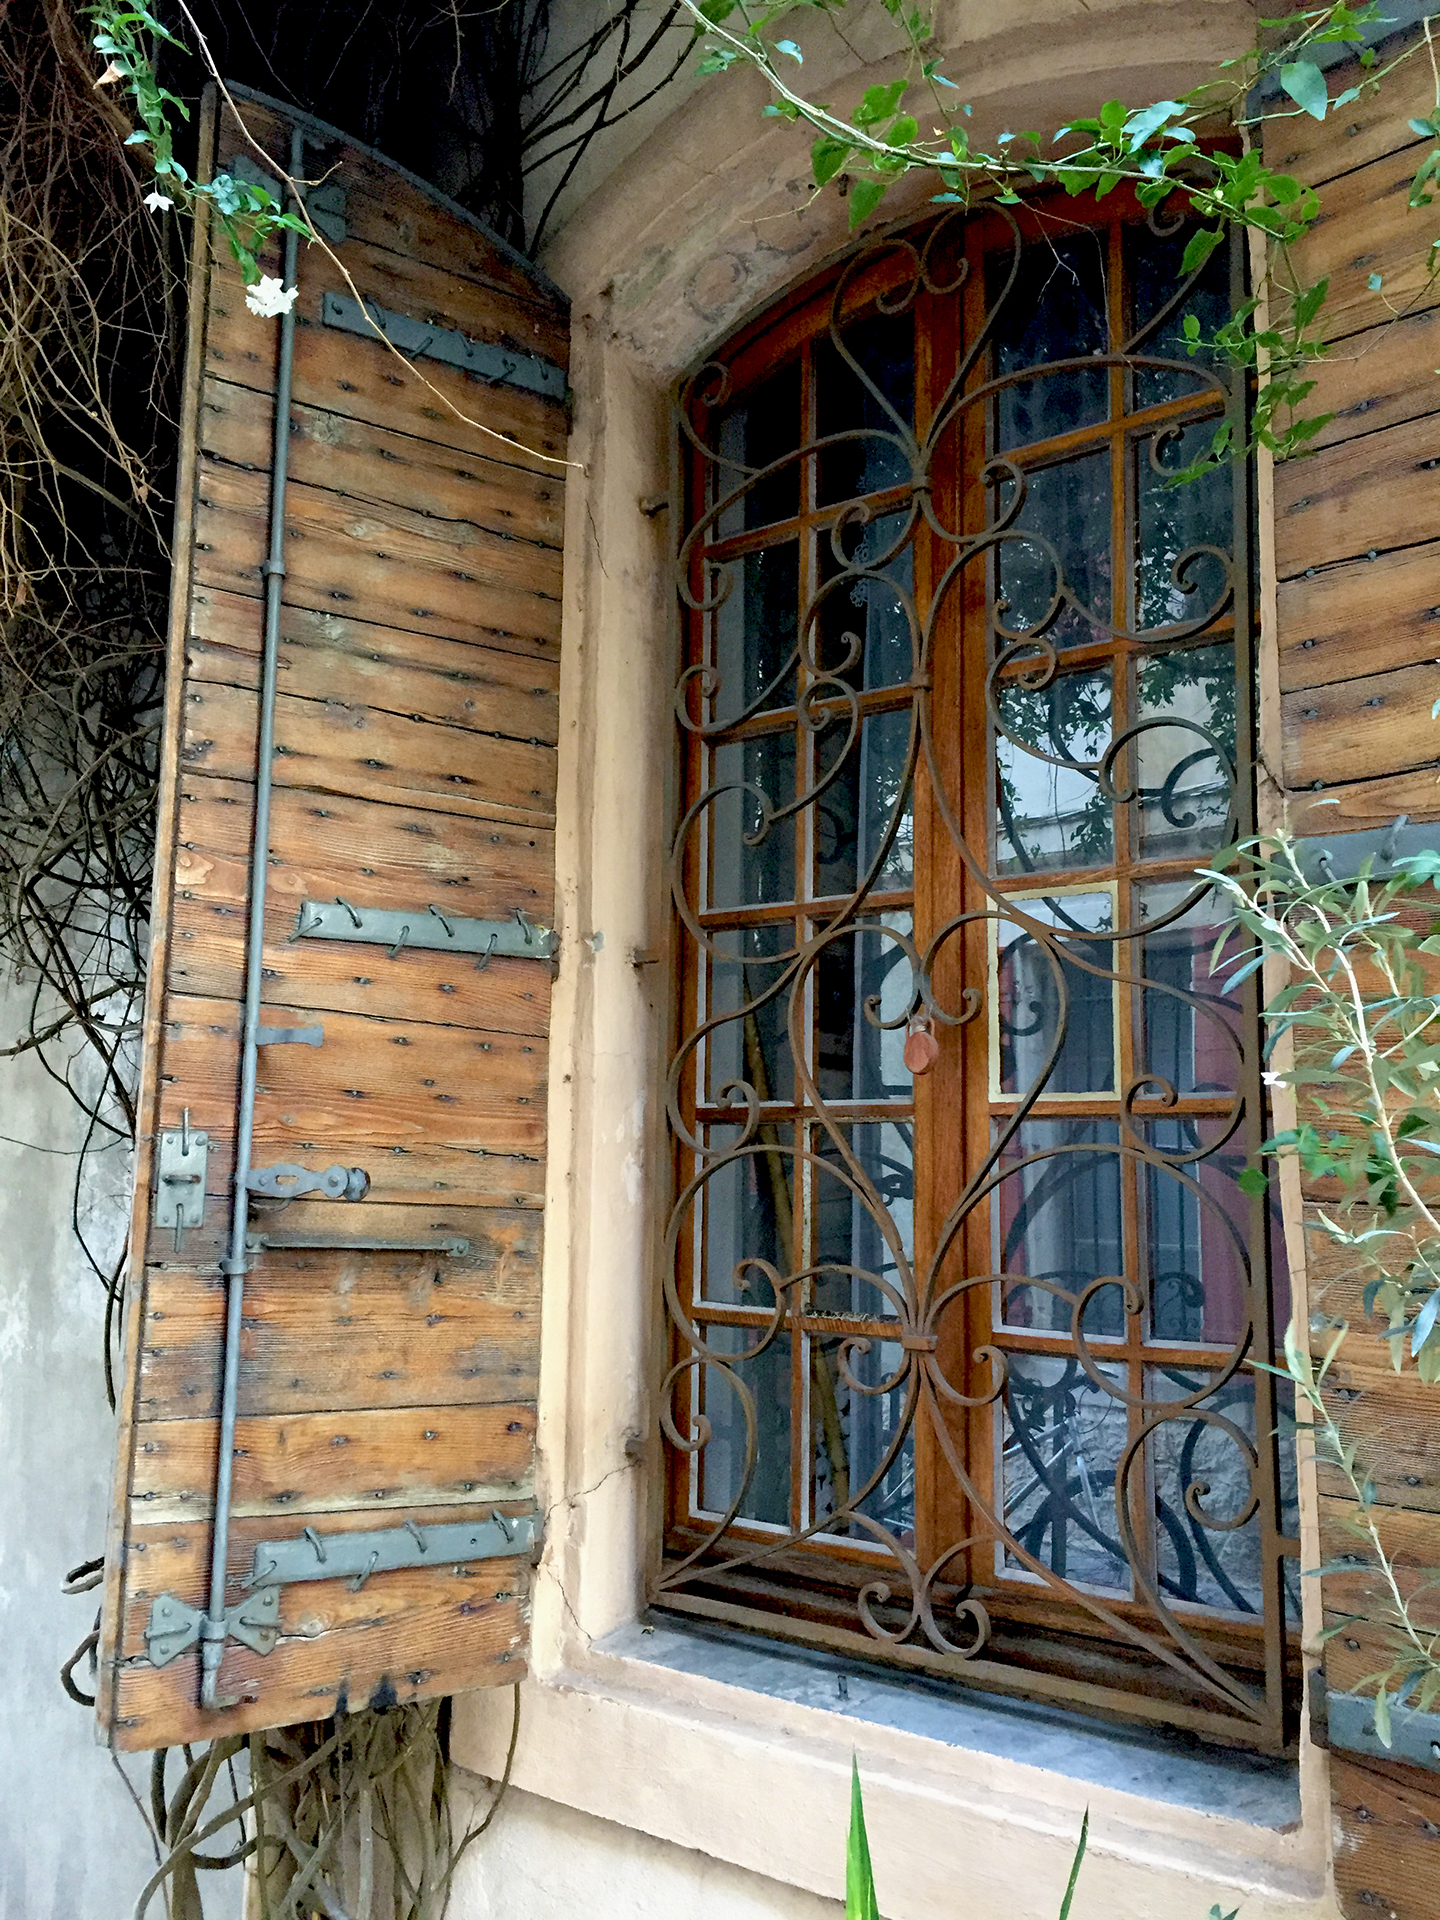 Rue Molière. I loved the iron work on the shutters and the window!